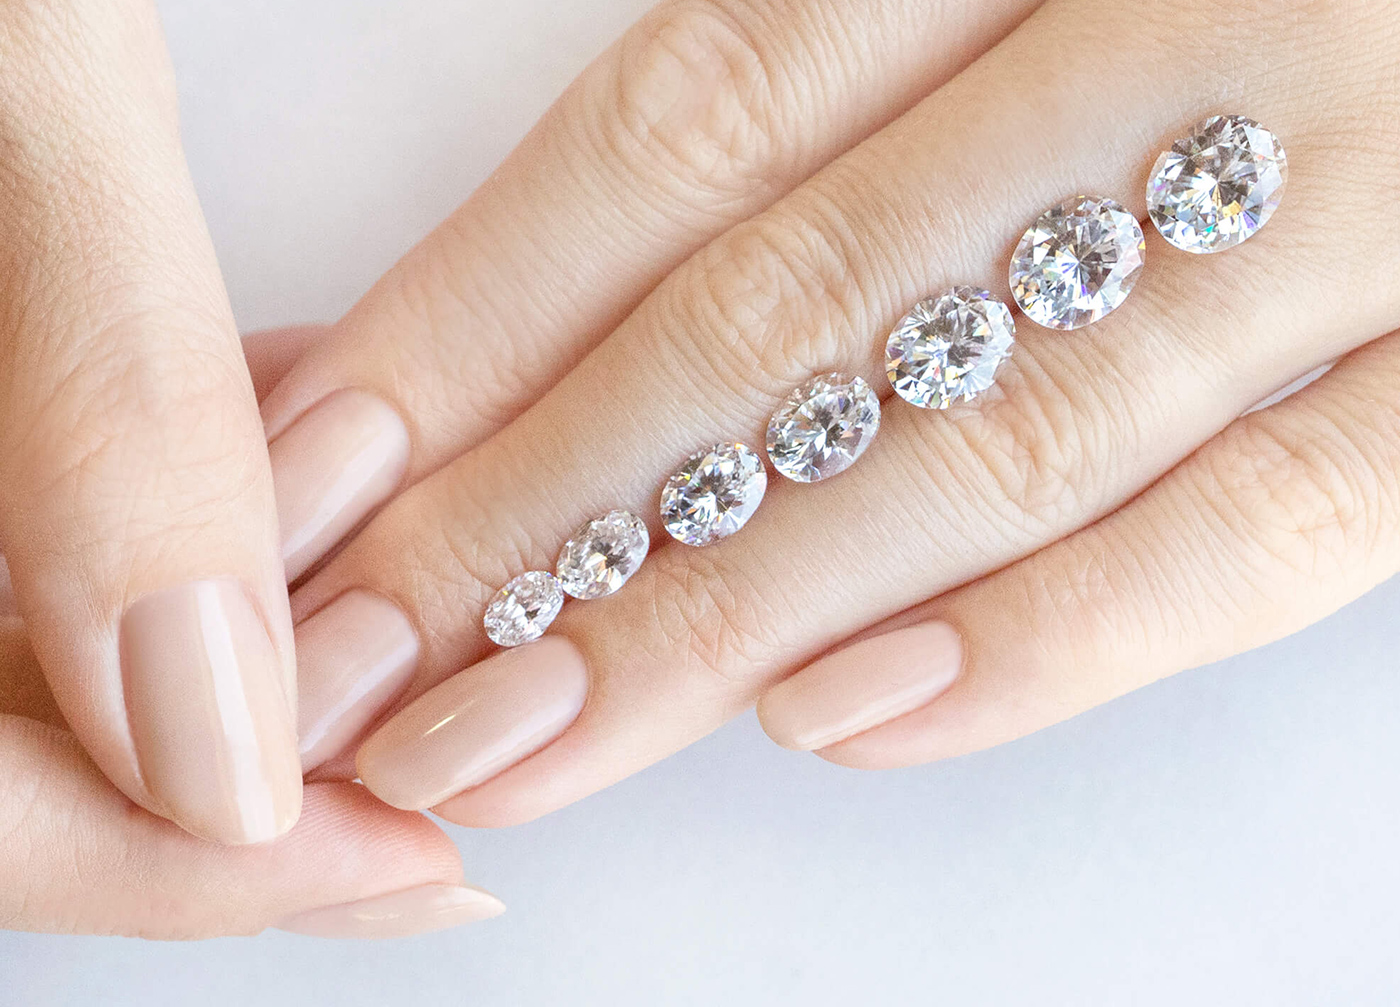 Loose Oval cut Nexus Diamond alternatives featured in varying carat weights resting on a hand.